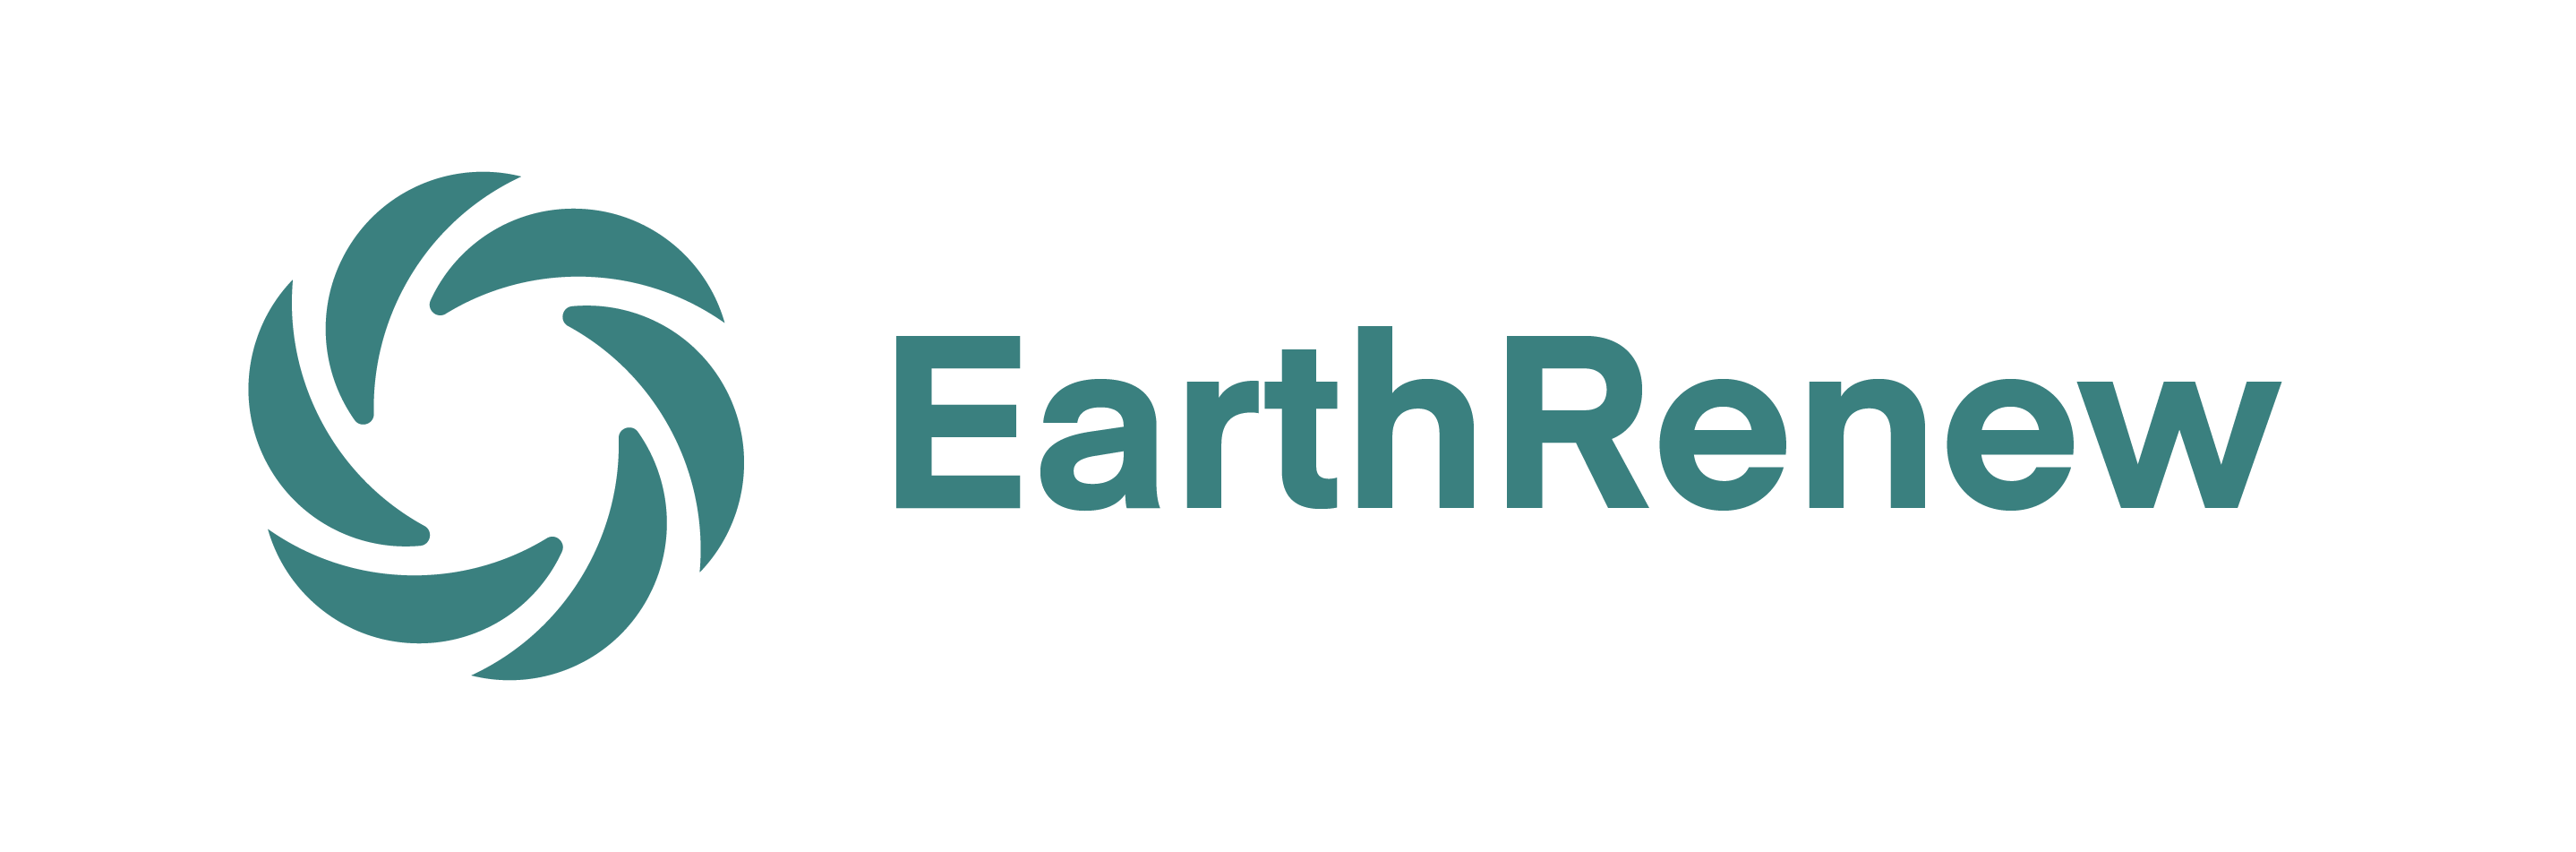 EarthRenew Announces Upgrades to the Power Production Capabilities of its On-Site 4